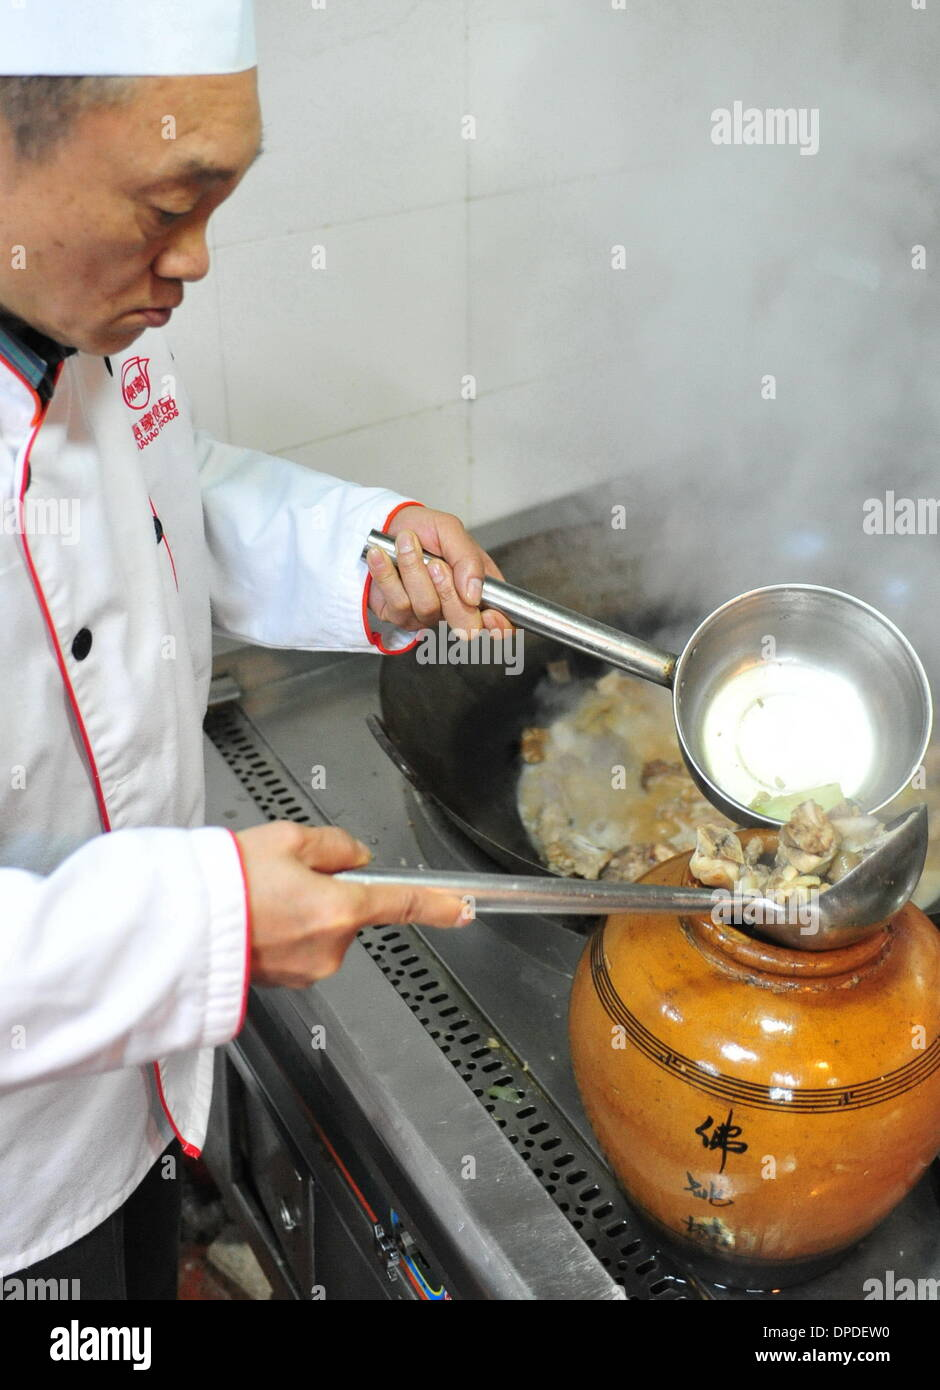 (140113) -- FUZHOU, Jan. 13, 2014 (Xinhua) -- National-top chef Qiang Zhentao puts the ingredient of a dish named Buddha Jumps Over the Wall into a pot, in Fuzhou, capital of southeast China's Fujian Province, Jan. 12, 2014. Buddha Jumps Over the Wall, or Fo Tiao Qiang in Chinese, is a kind of soup or stew which has enjoyed a over 100-year-long worldwide reputation since it was invented in the late Qing Dynasty (1644-1911) by Zheng Chunfa, a chief chef at a local restaurant. The dish's name is referred to an allusion to its ability to entice the vegetarian monks to partake in the meat-based di - Stock Image